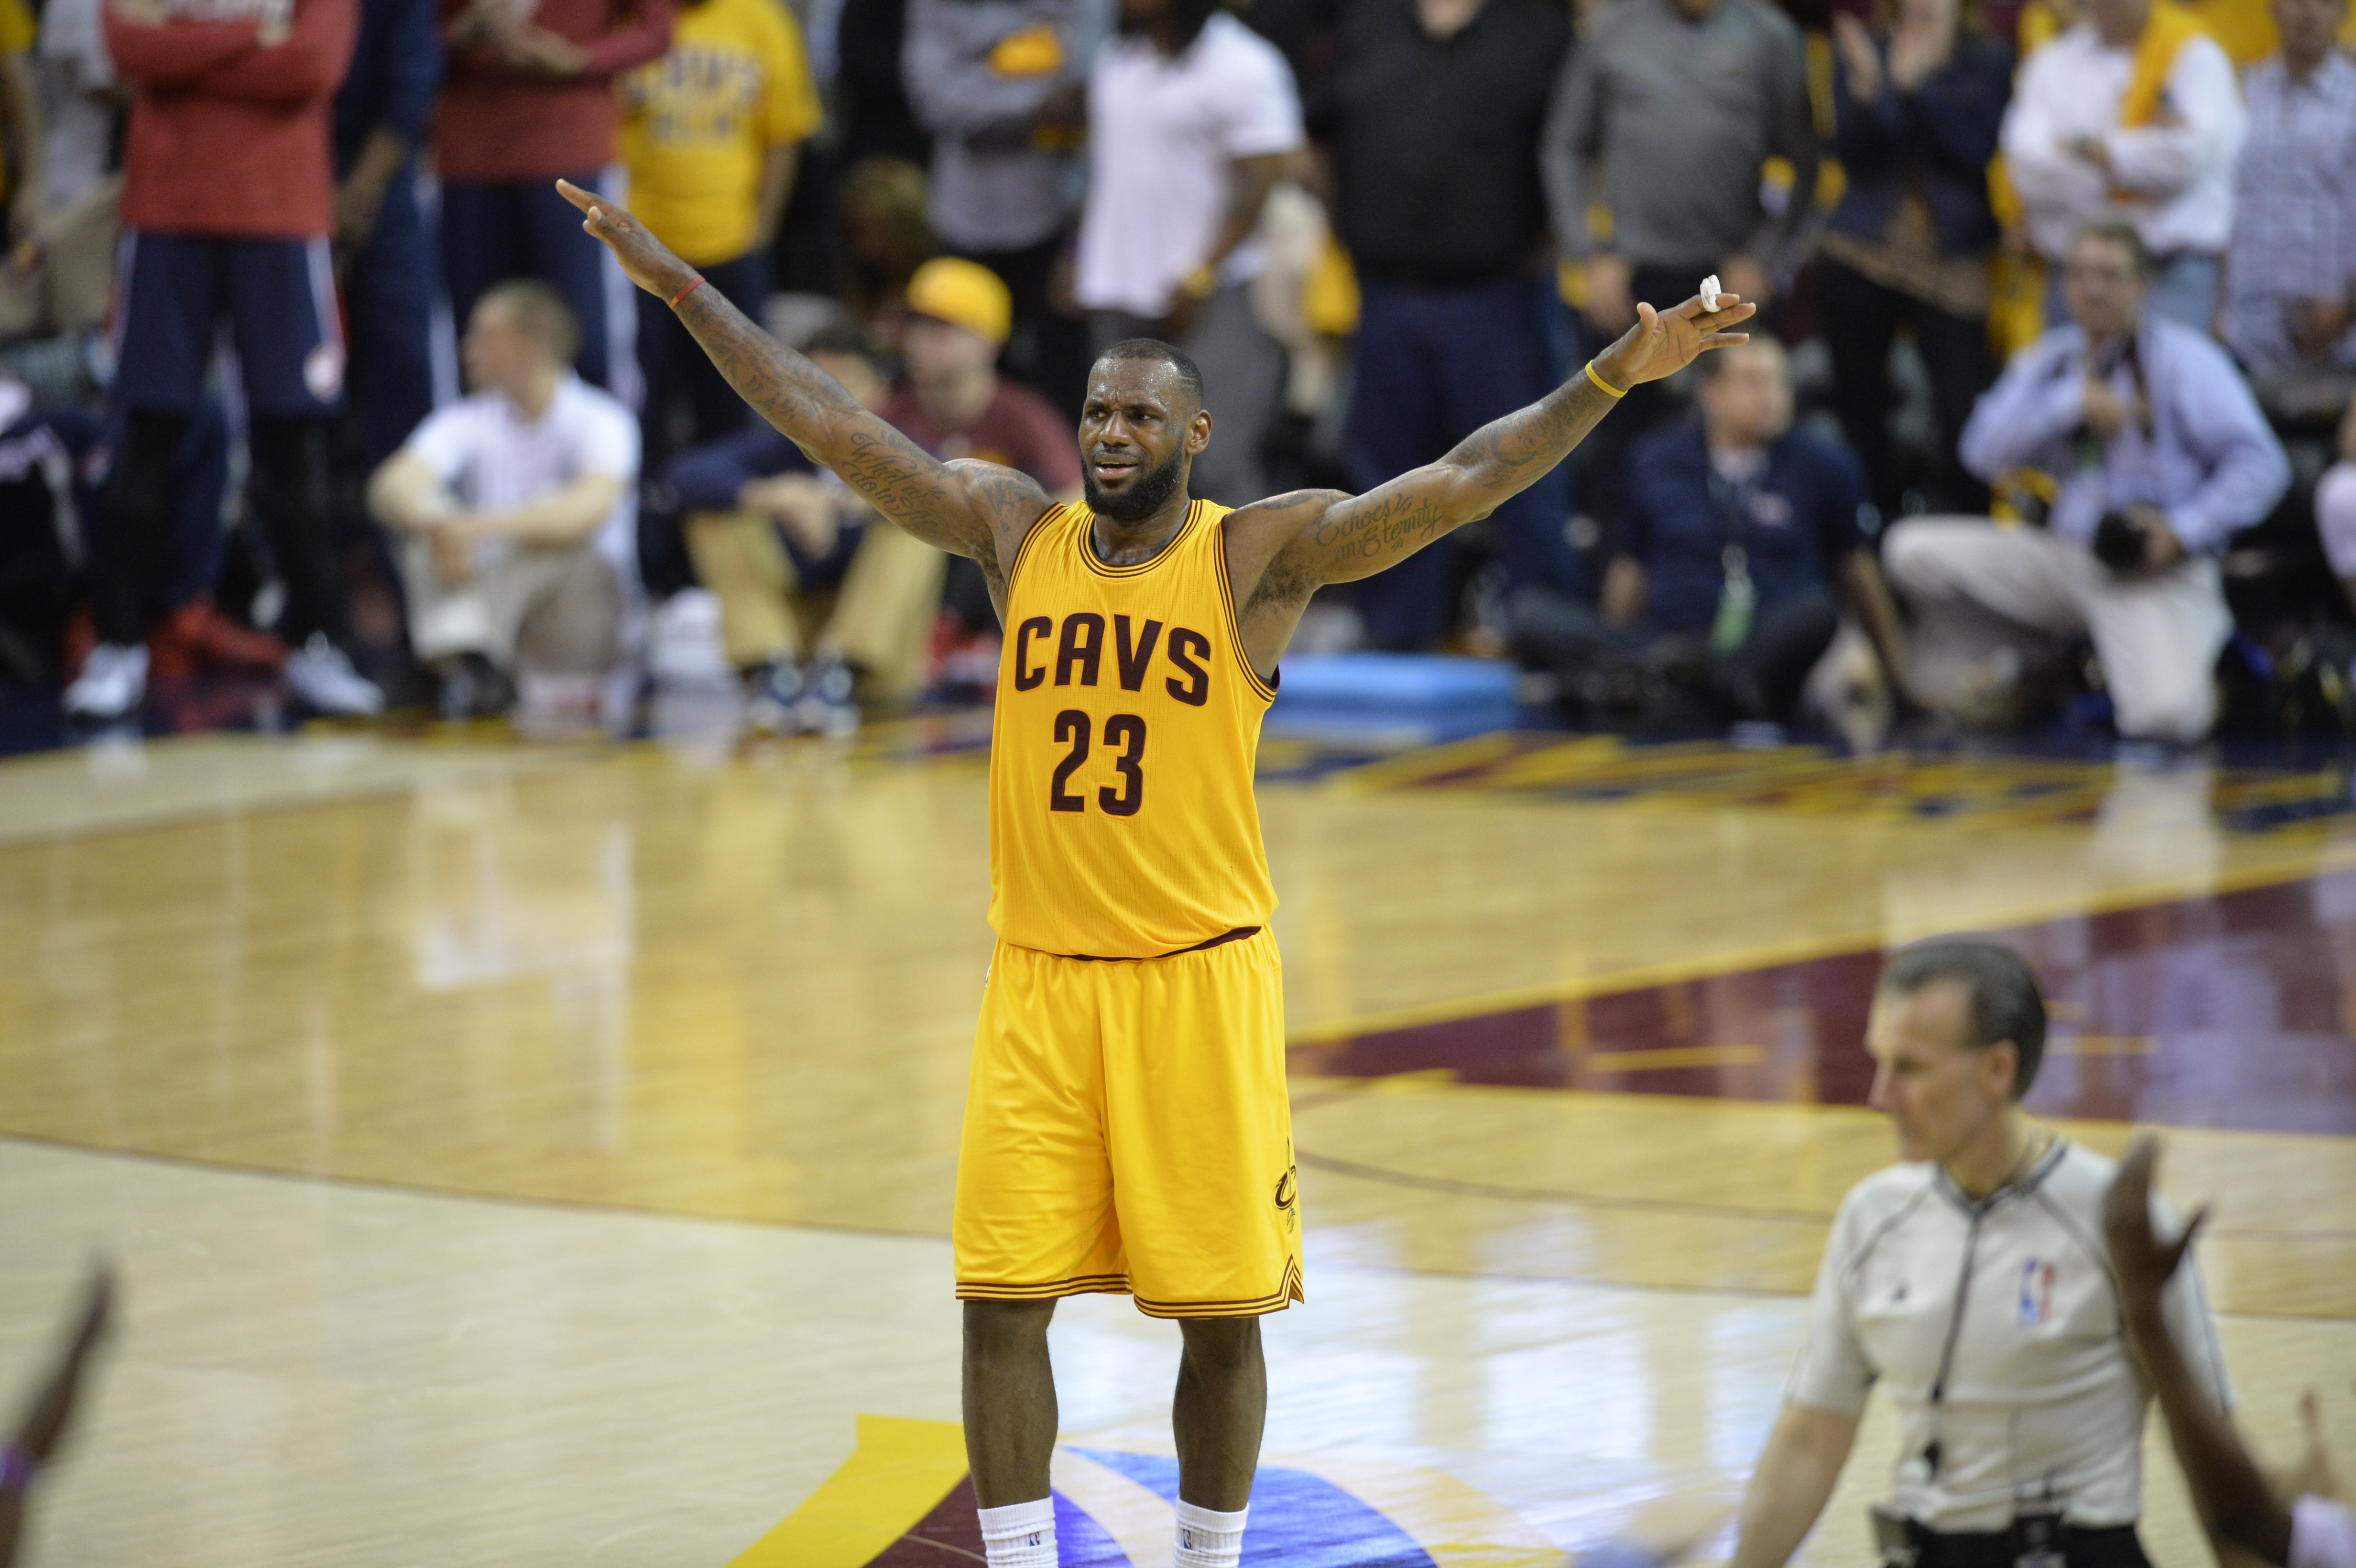 LeBron carries Cavs to 3-0 lead, NBA Finals in reach